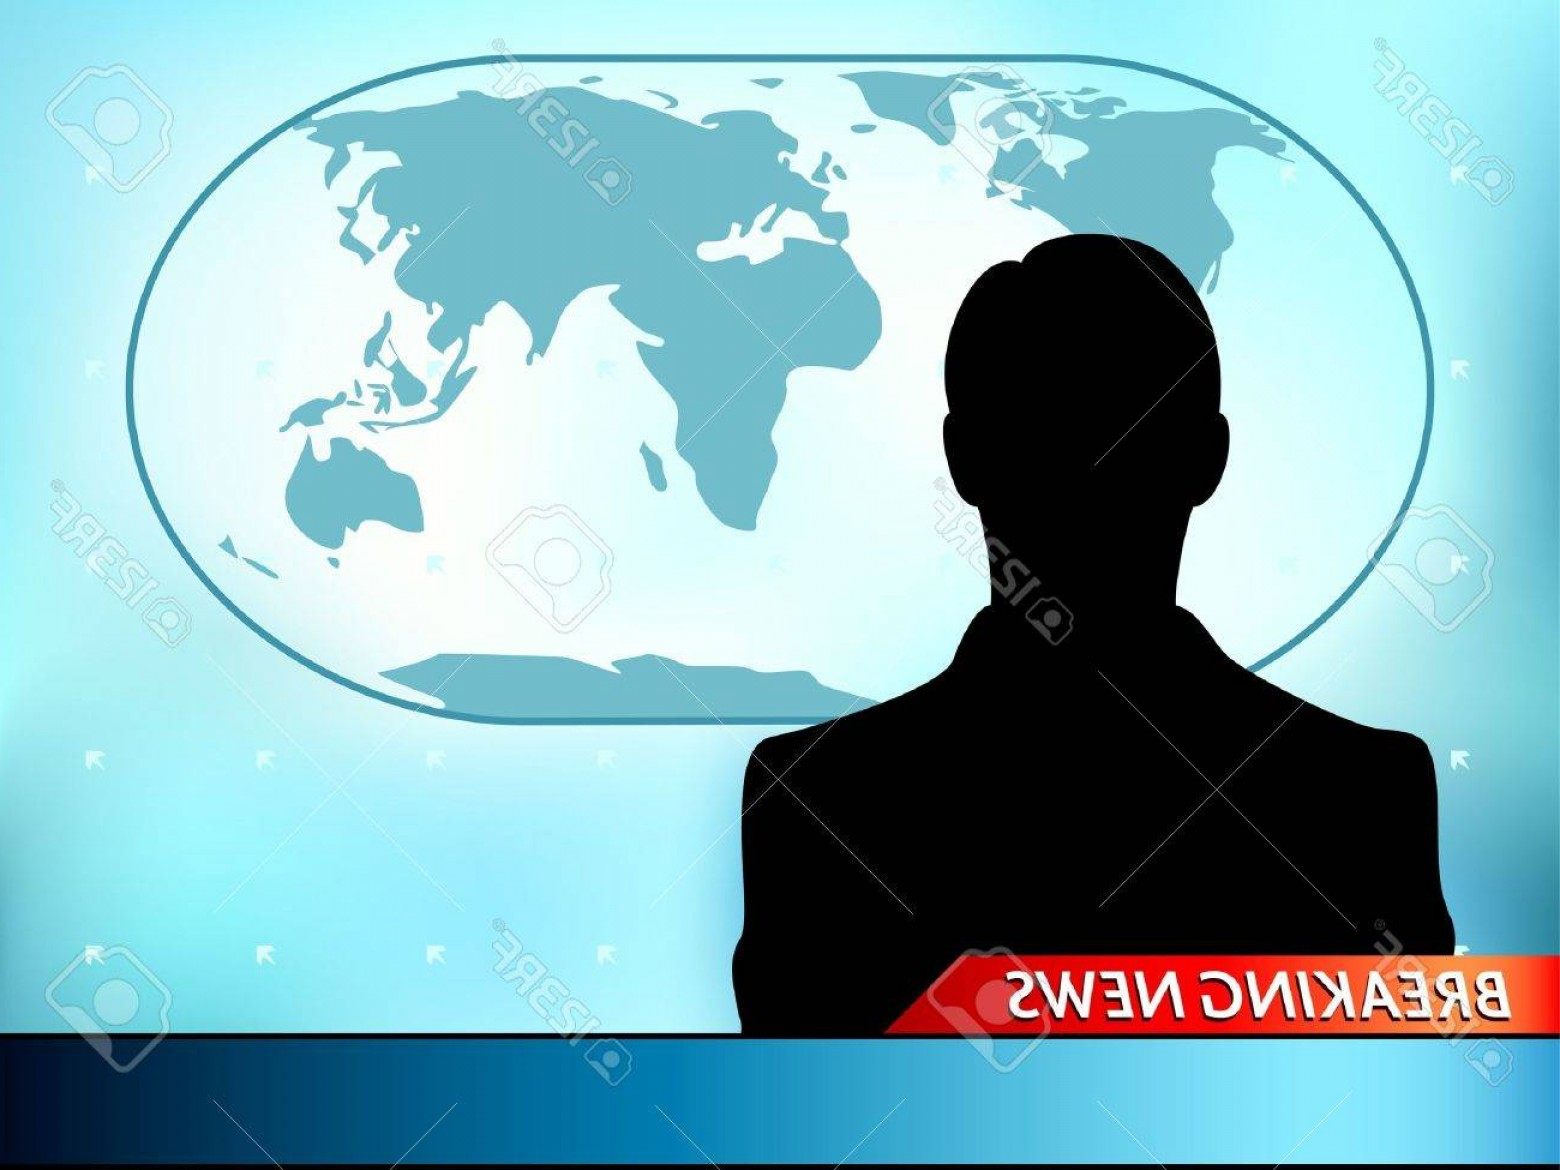 Abstract Vector Art Globe TV: Photobreaking News Tv Background With Man Reporter